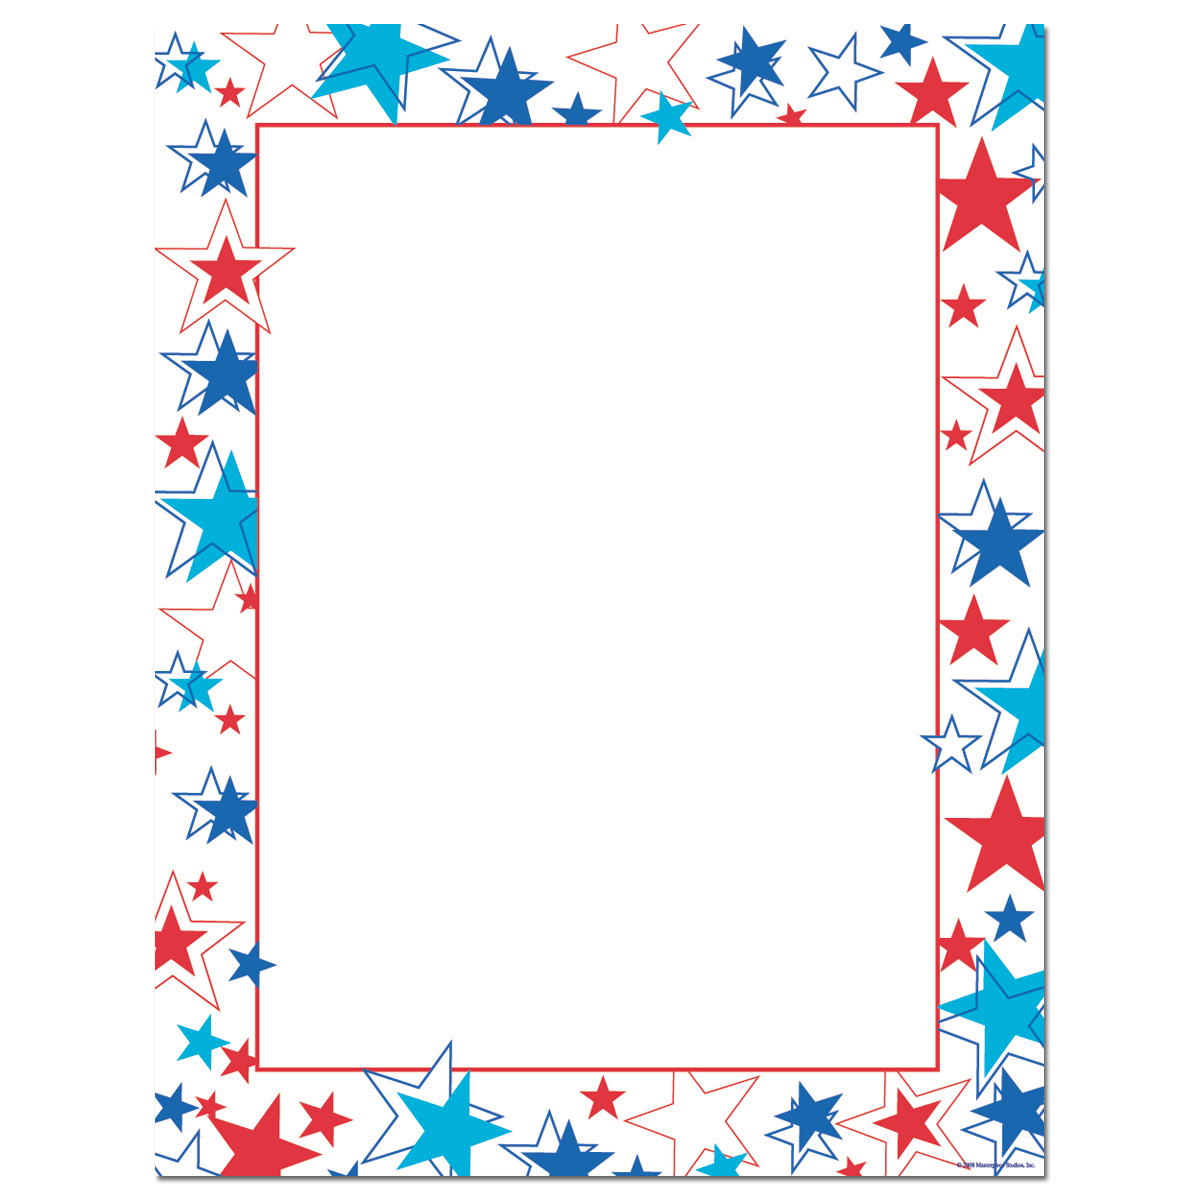 quick view malh006 red white and blue stars letterhead red white and blue stars letterhead